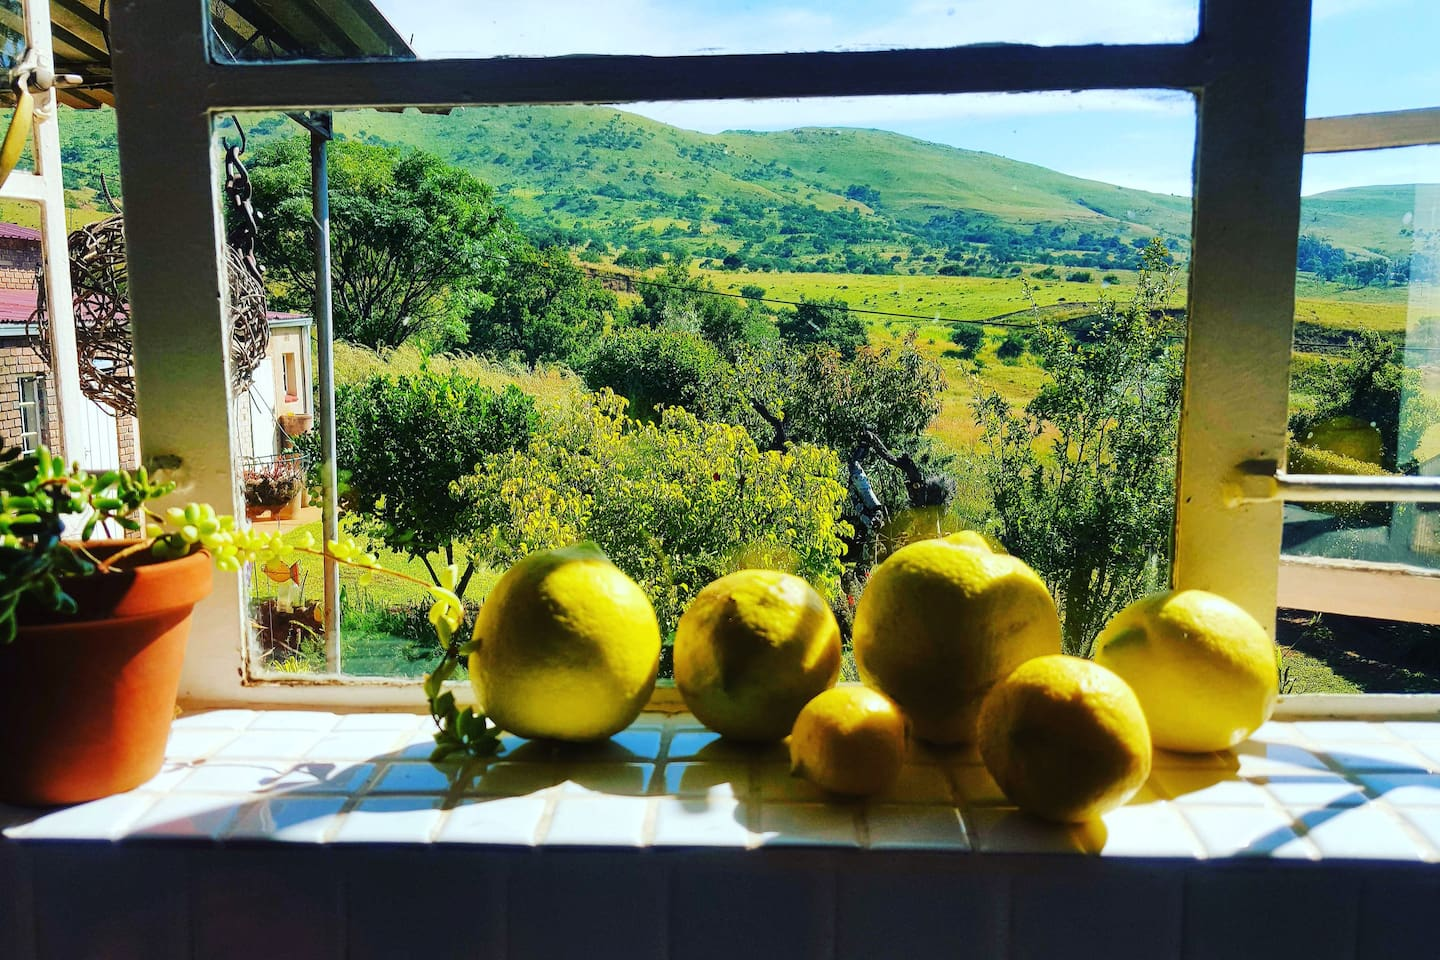 The house revolves around the kitchen, which has an awesome view of the countryside.